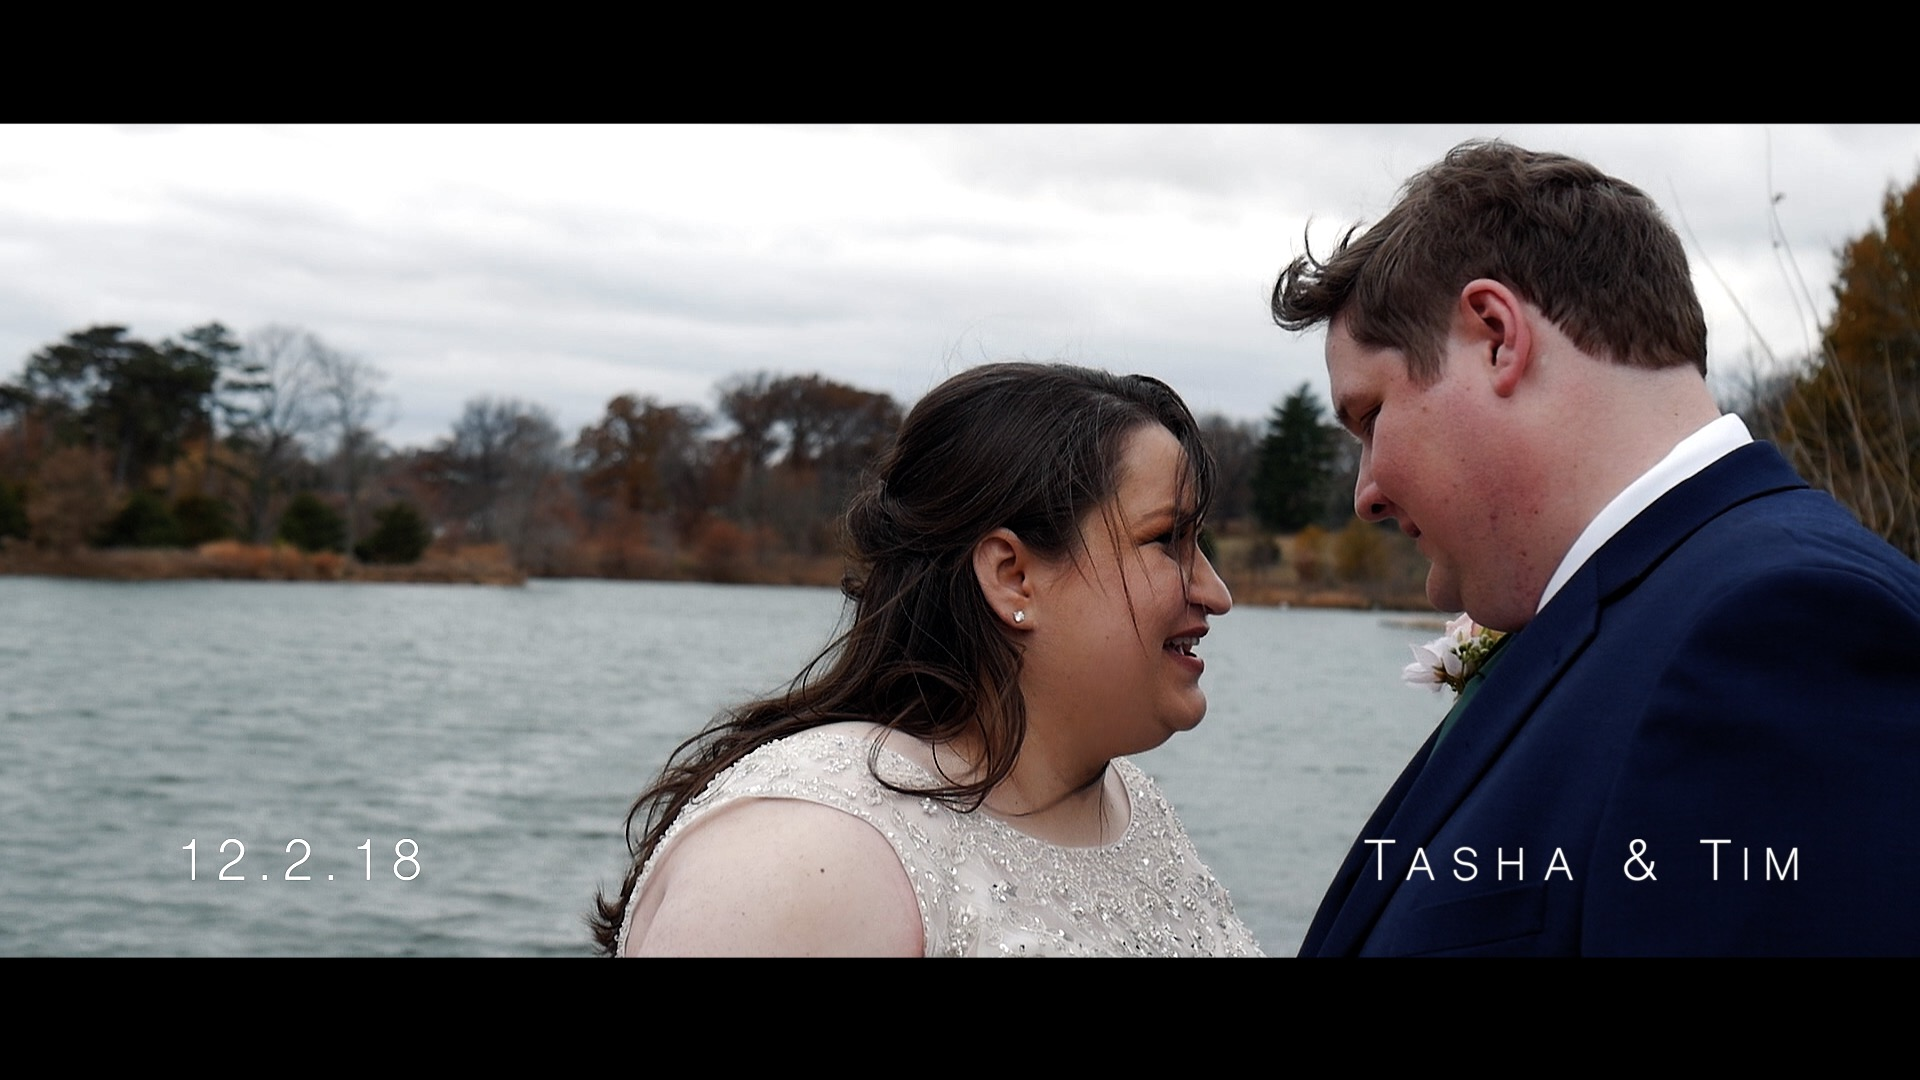 Tasha + Tim | St. Louis, Missouri | Boathouse at Forest Park